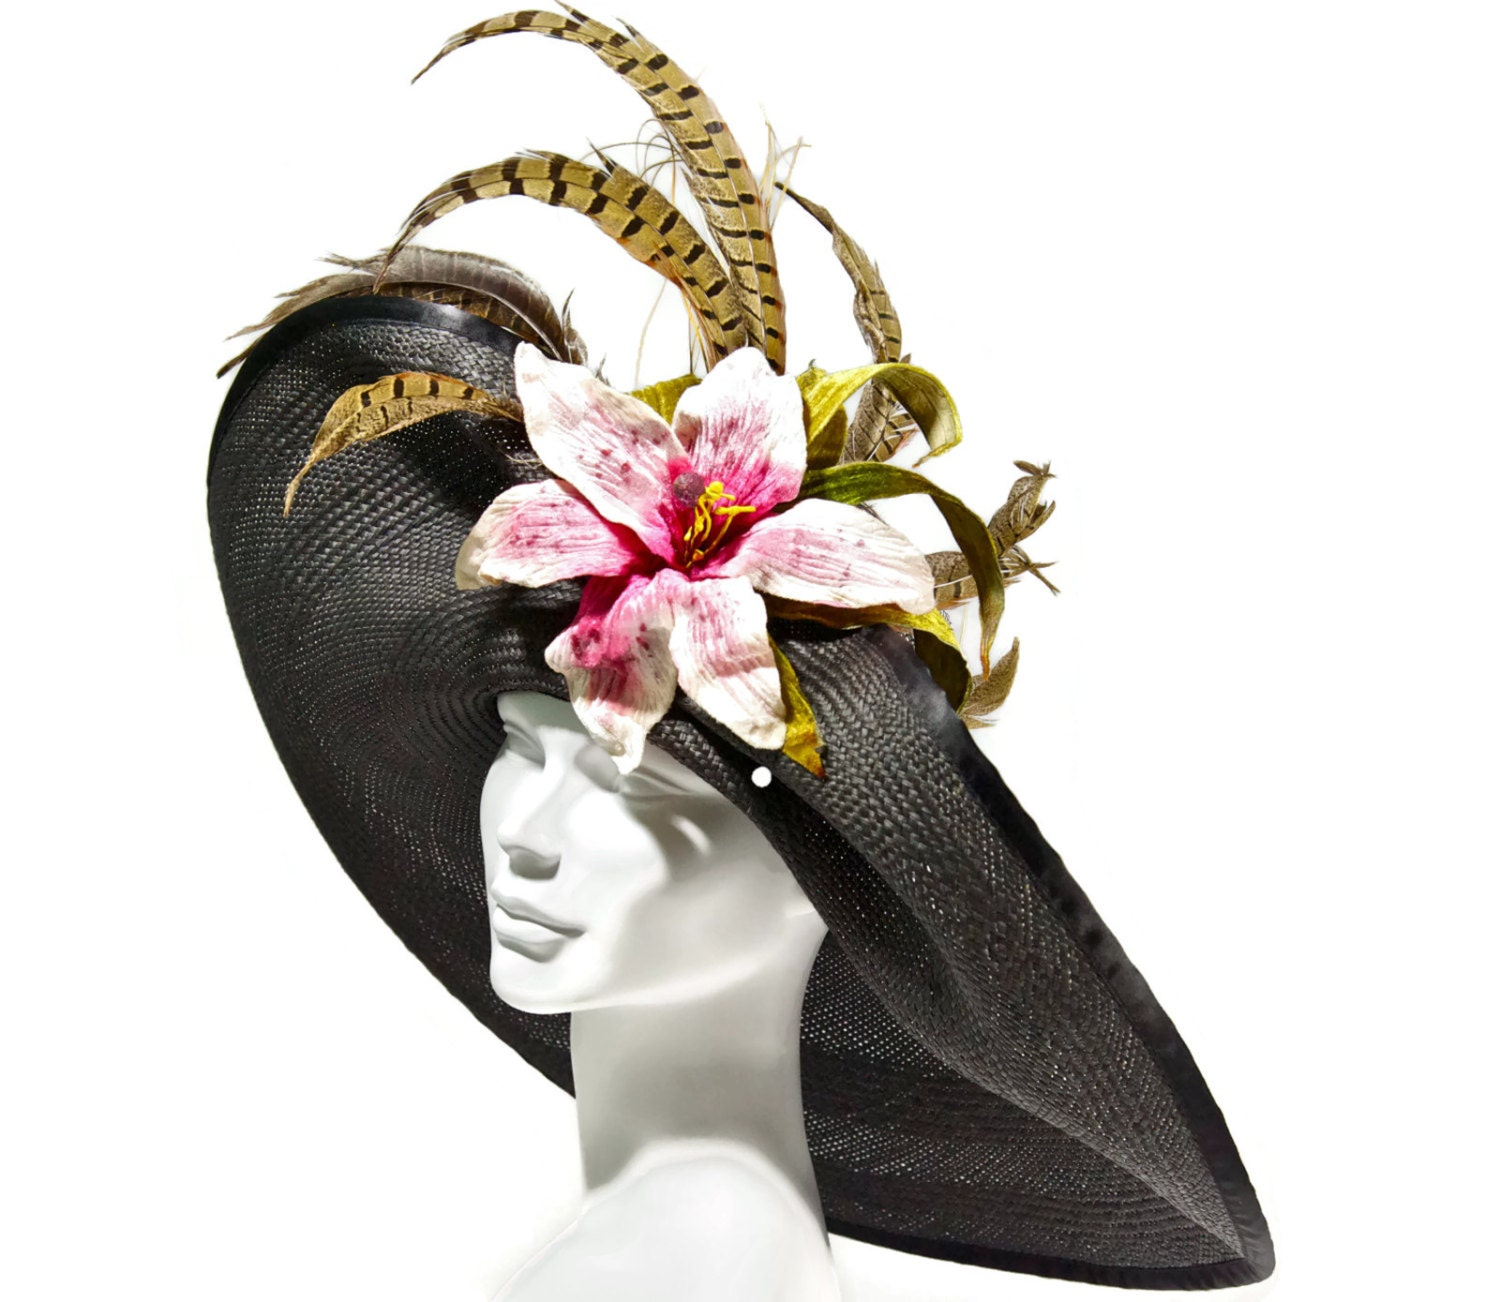 05fe8607ca9 WIDE BRIM Kentucky Derby Hat Easter Hat Large Brim Black. WIDE BRIM  Kentucky Derby. White Derby Hat with pink flower ...